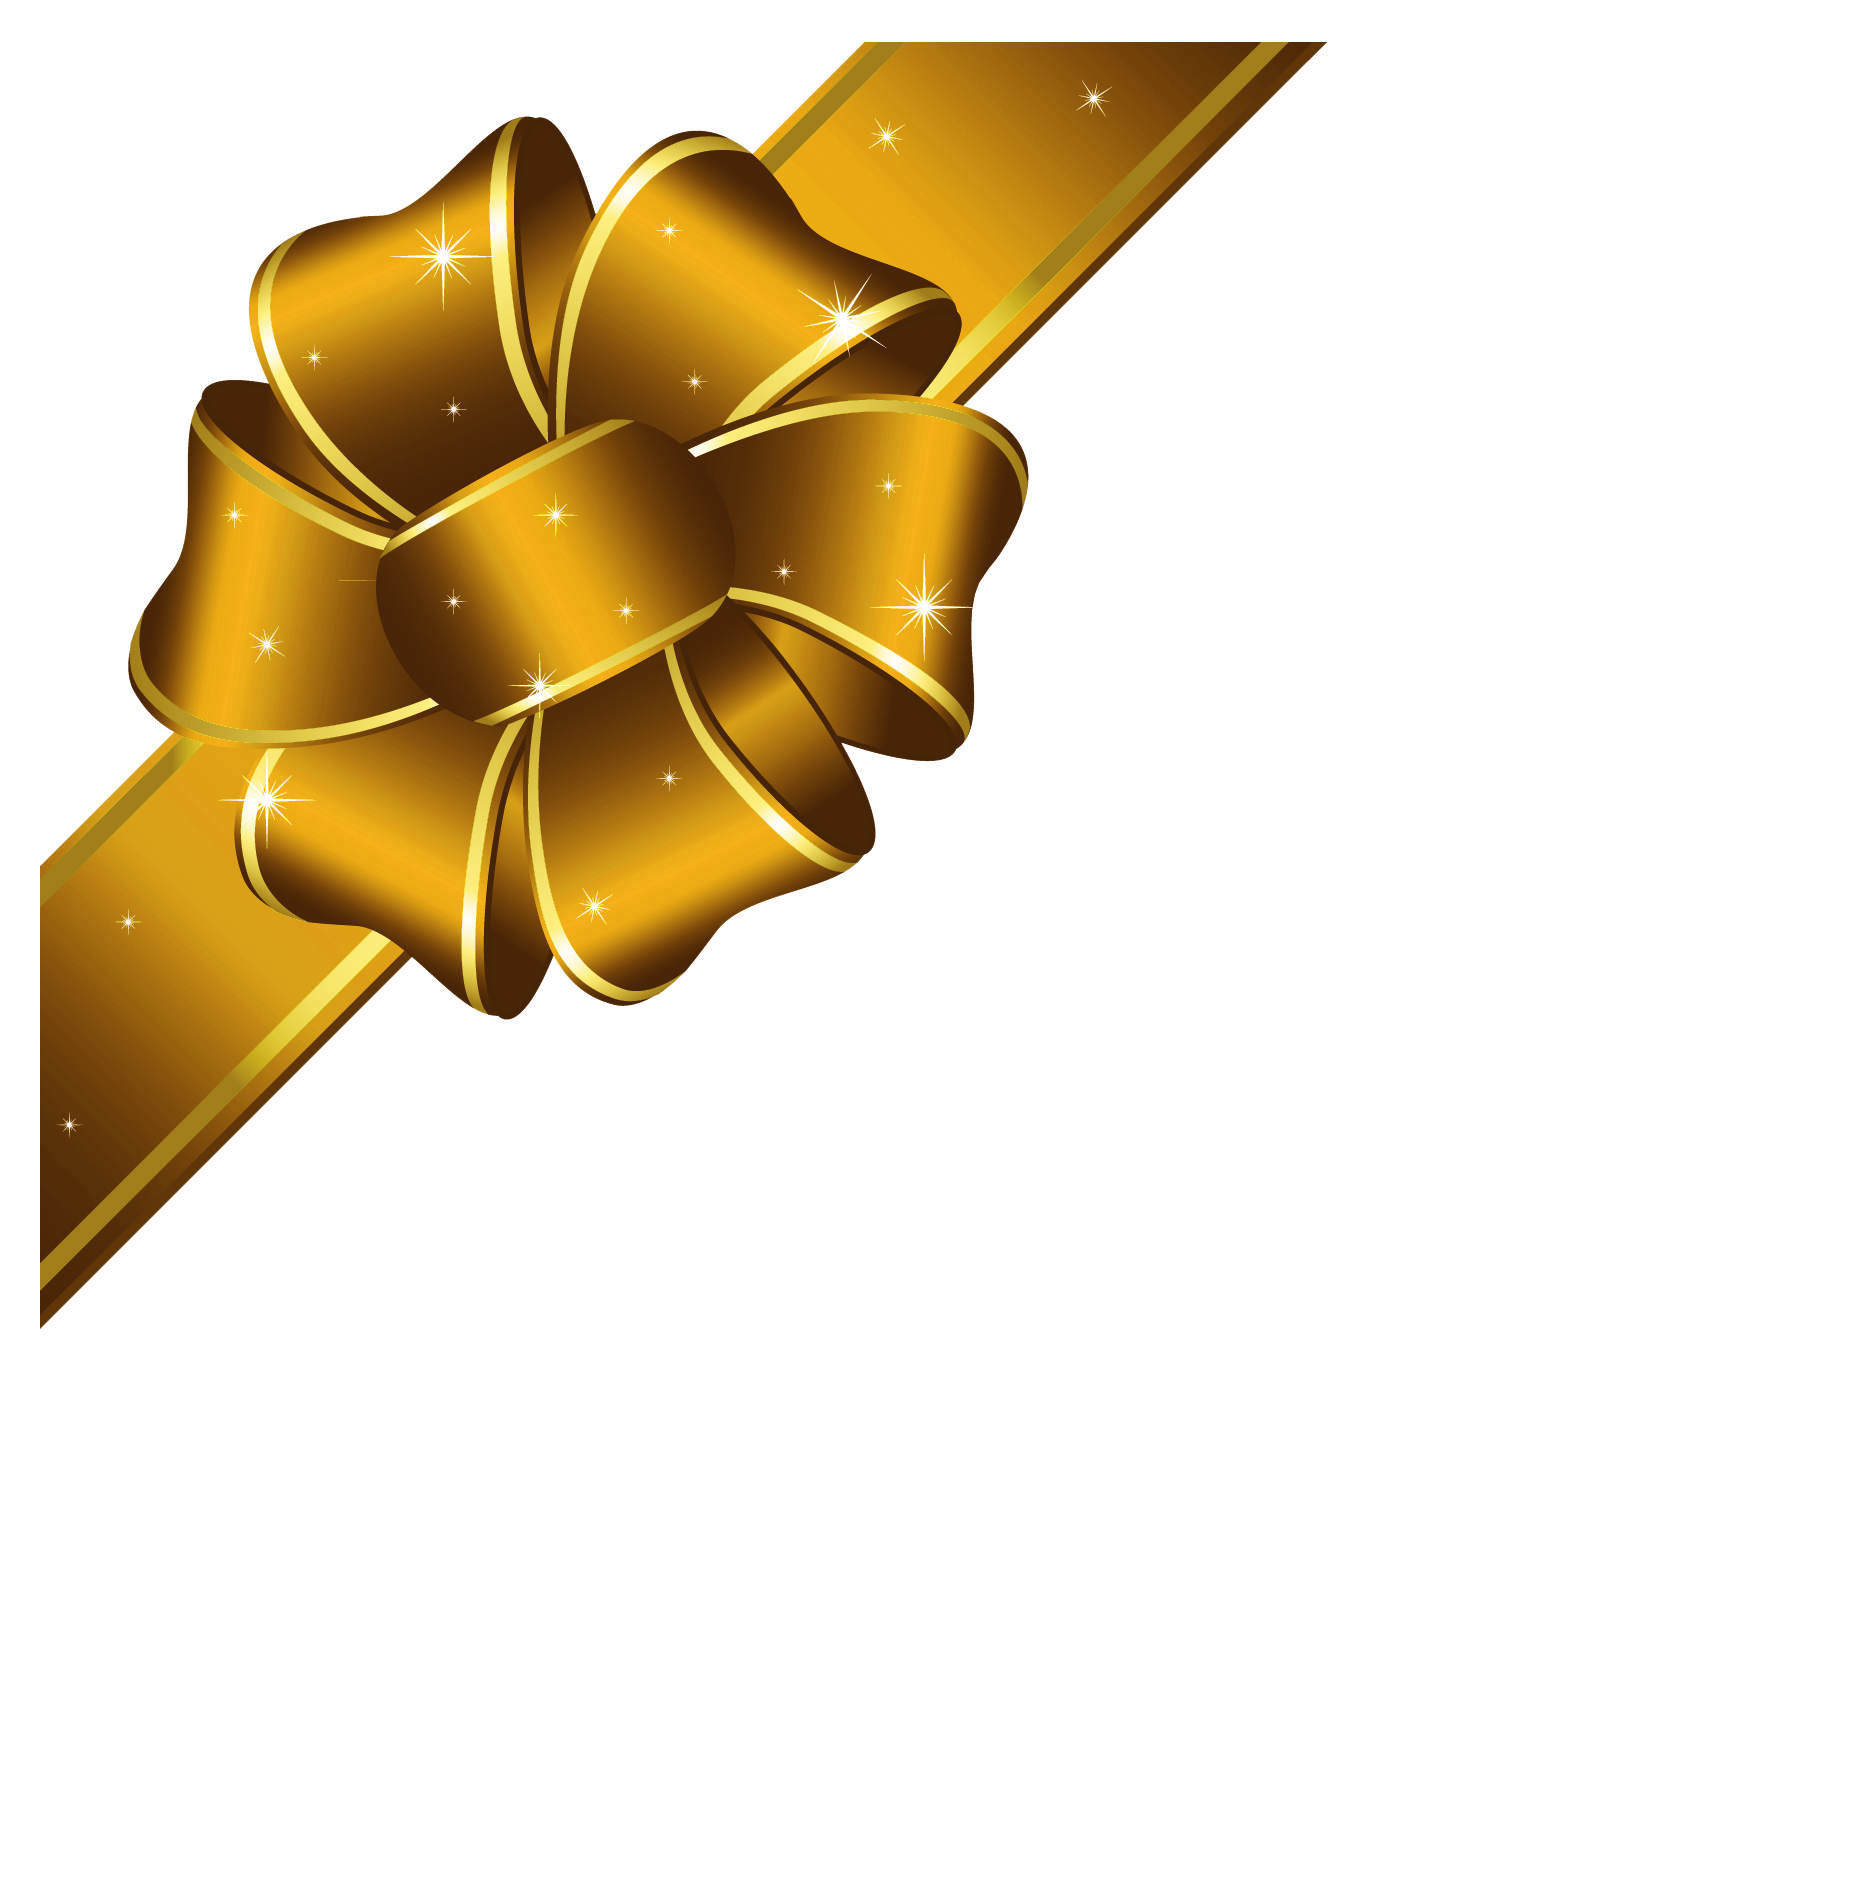 Gold bow png. Christmas lacalabaza clipart kid